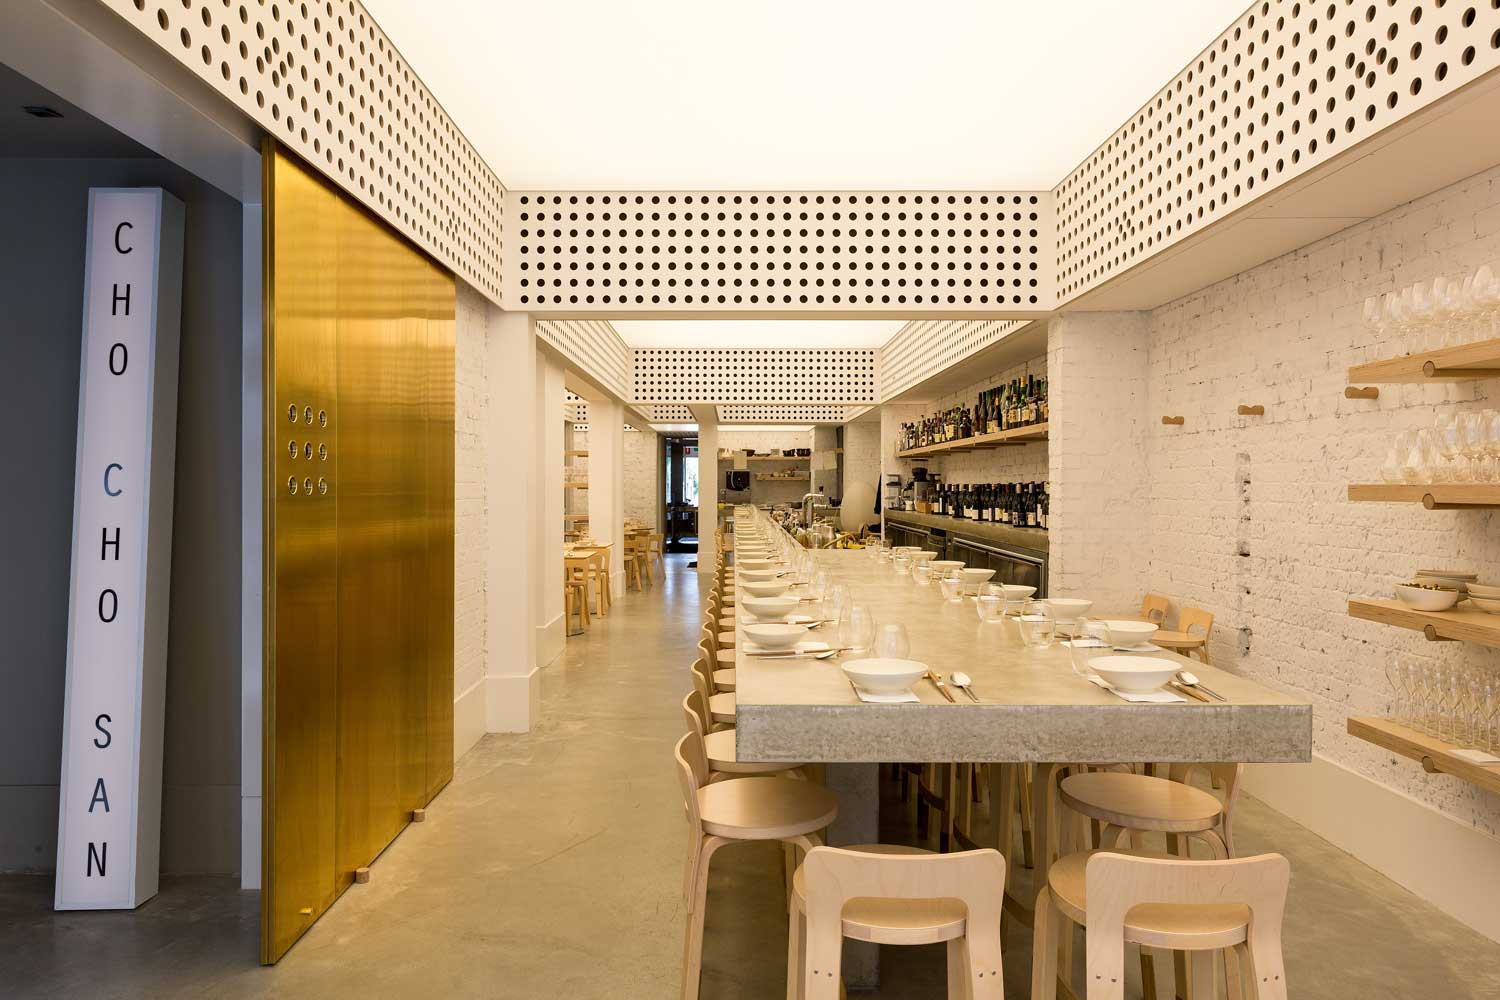 Cho San Contemporary Japanese Restaurant In Sydney By George Livissianis